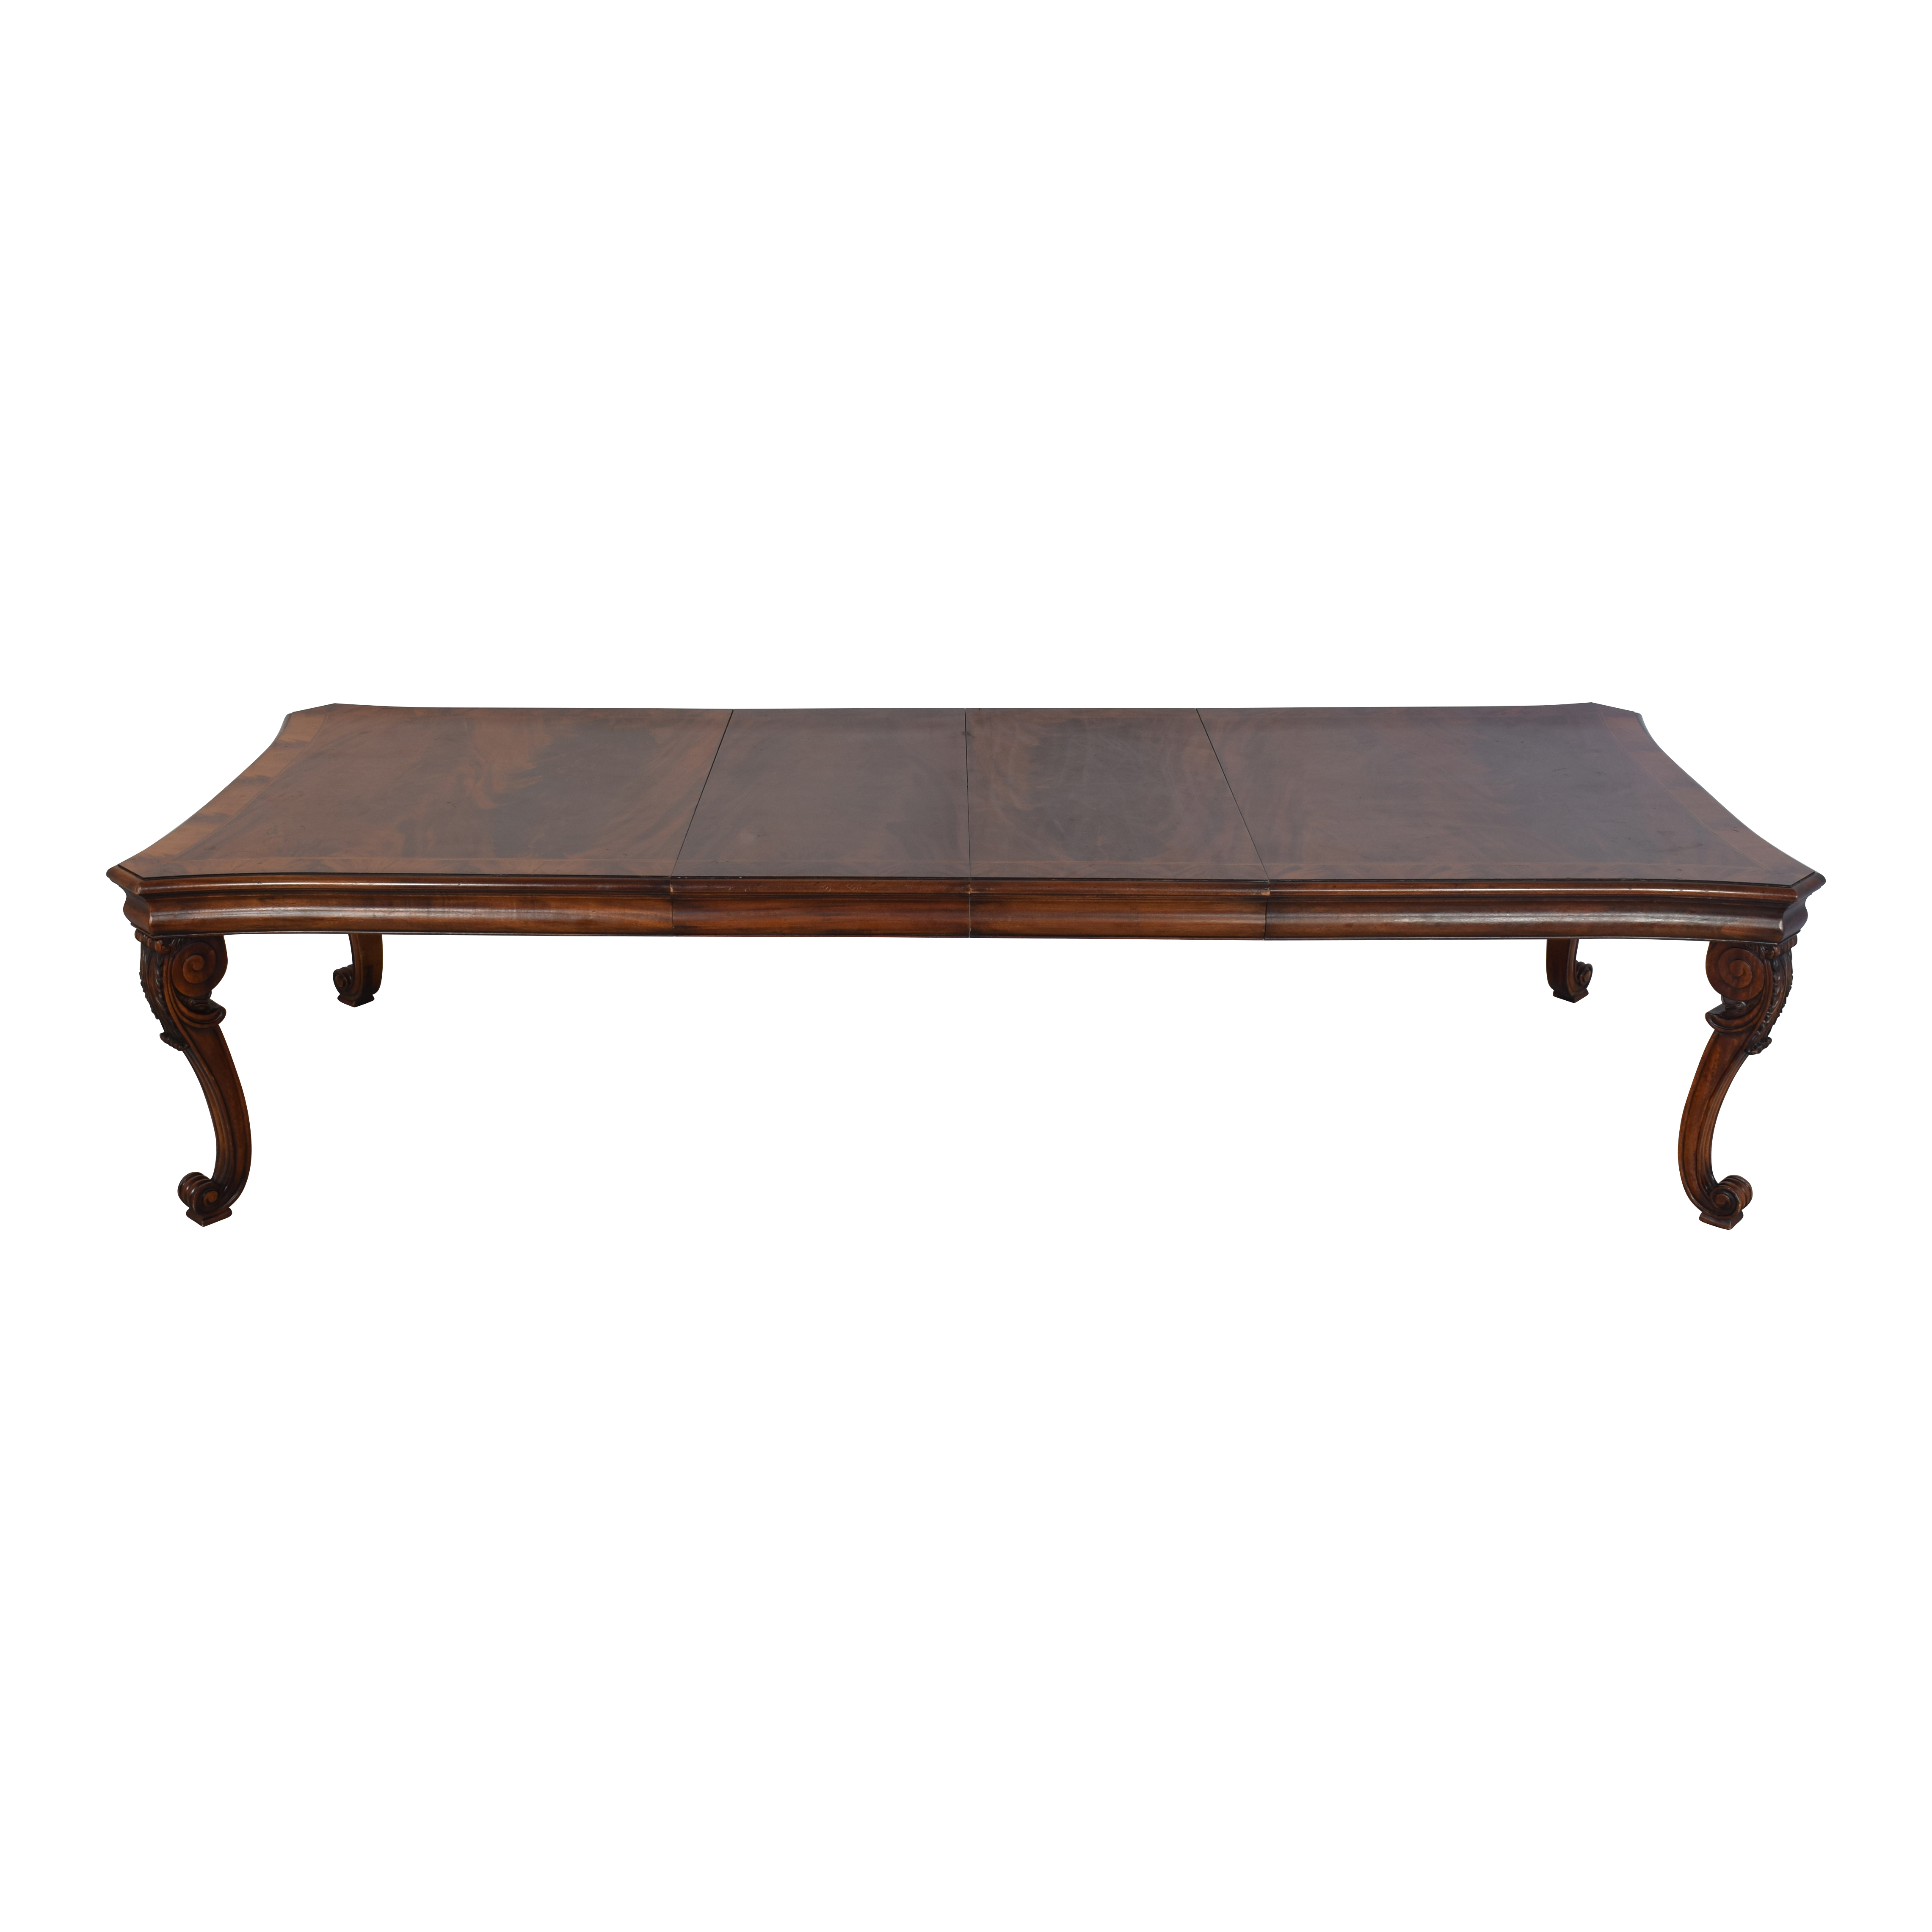 Ralph Lauren Home Ralph Lauren Home Beekman Mahogany Dining Table with Two Additional Leaves nyc